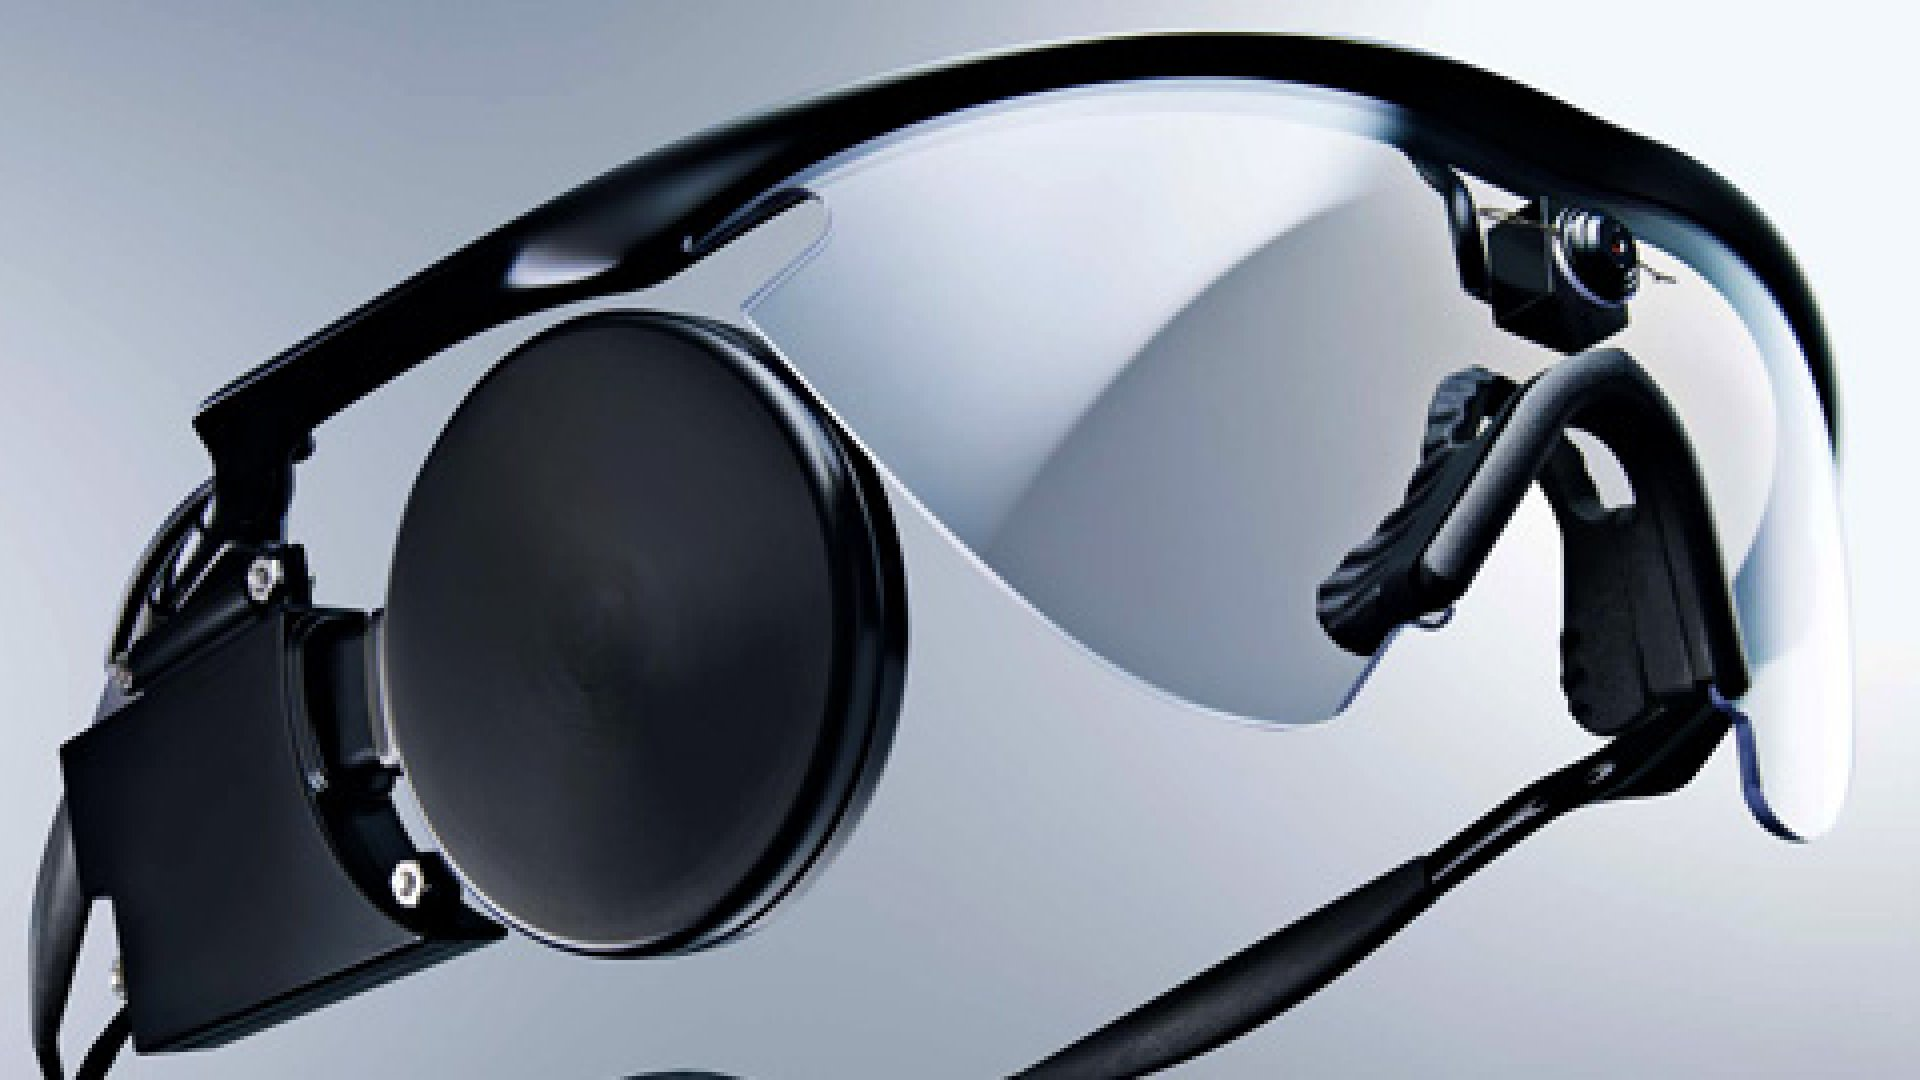 Innovation: Giving Sight to the Blind